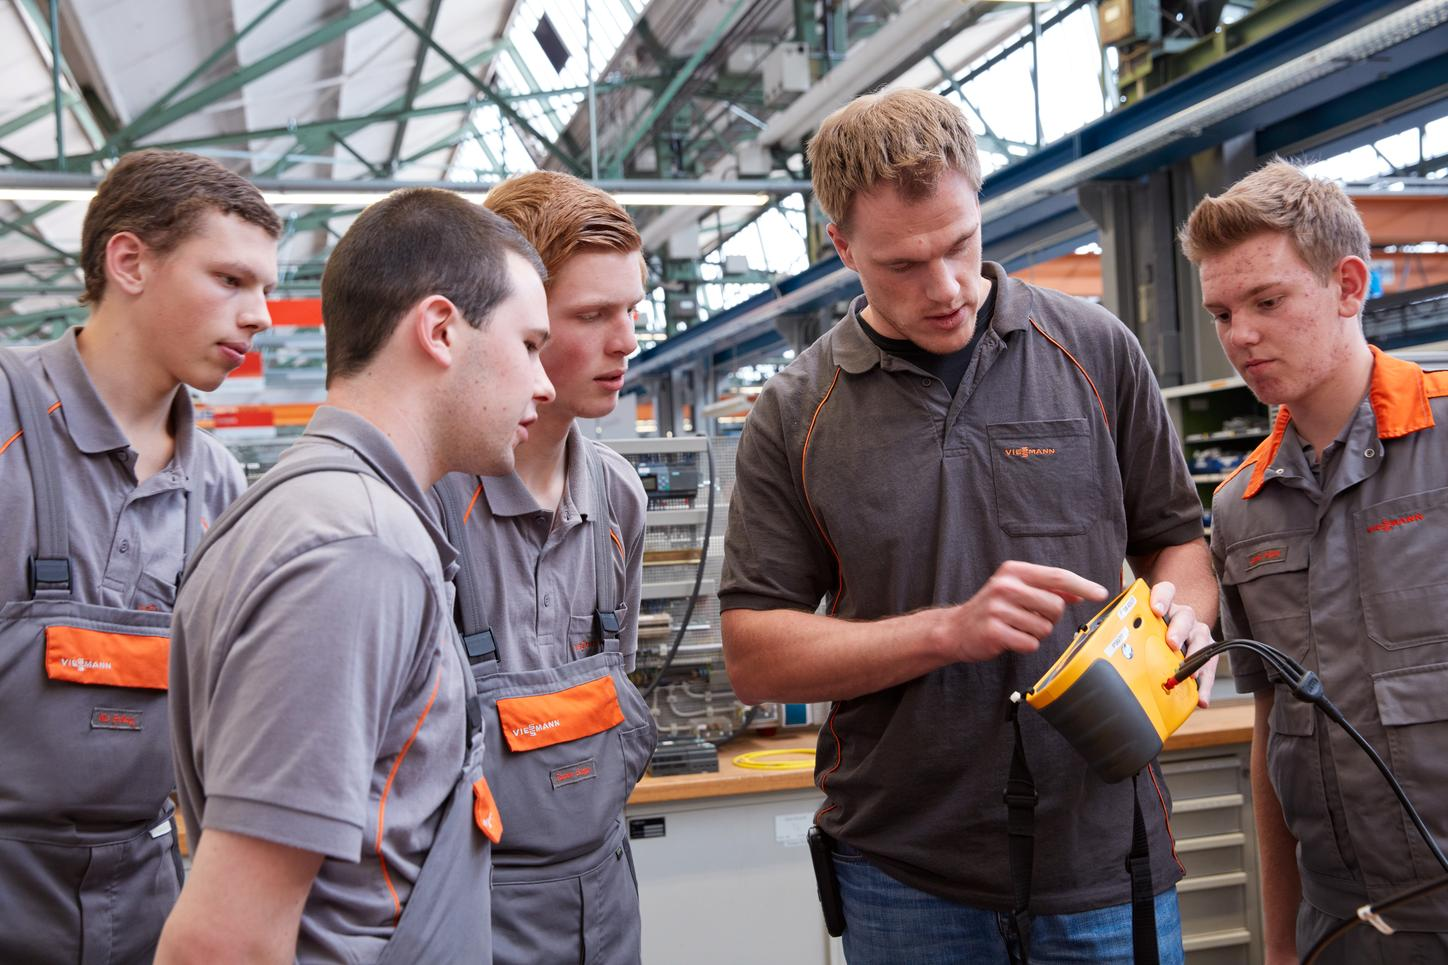 The image shows trainees at Viessmann, to whom an employee explains something.